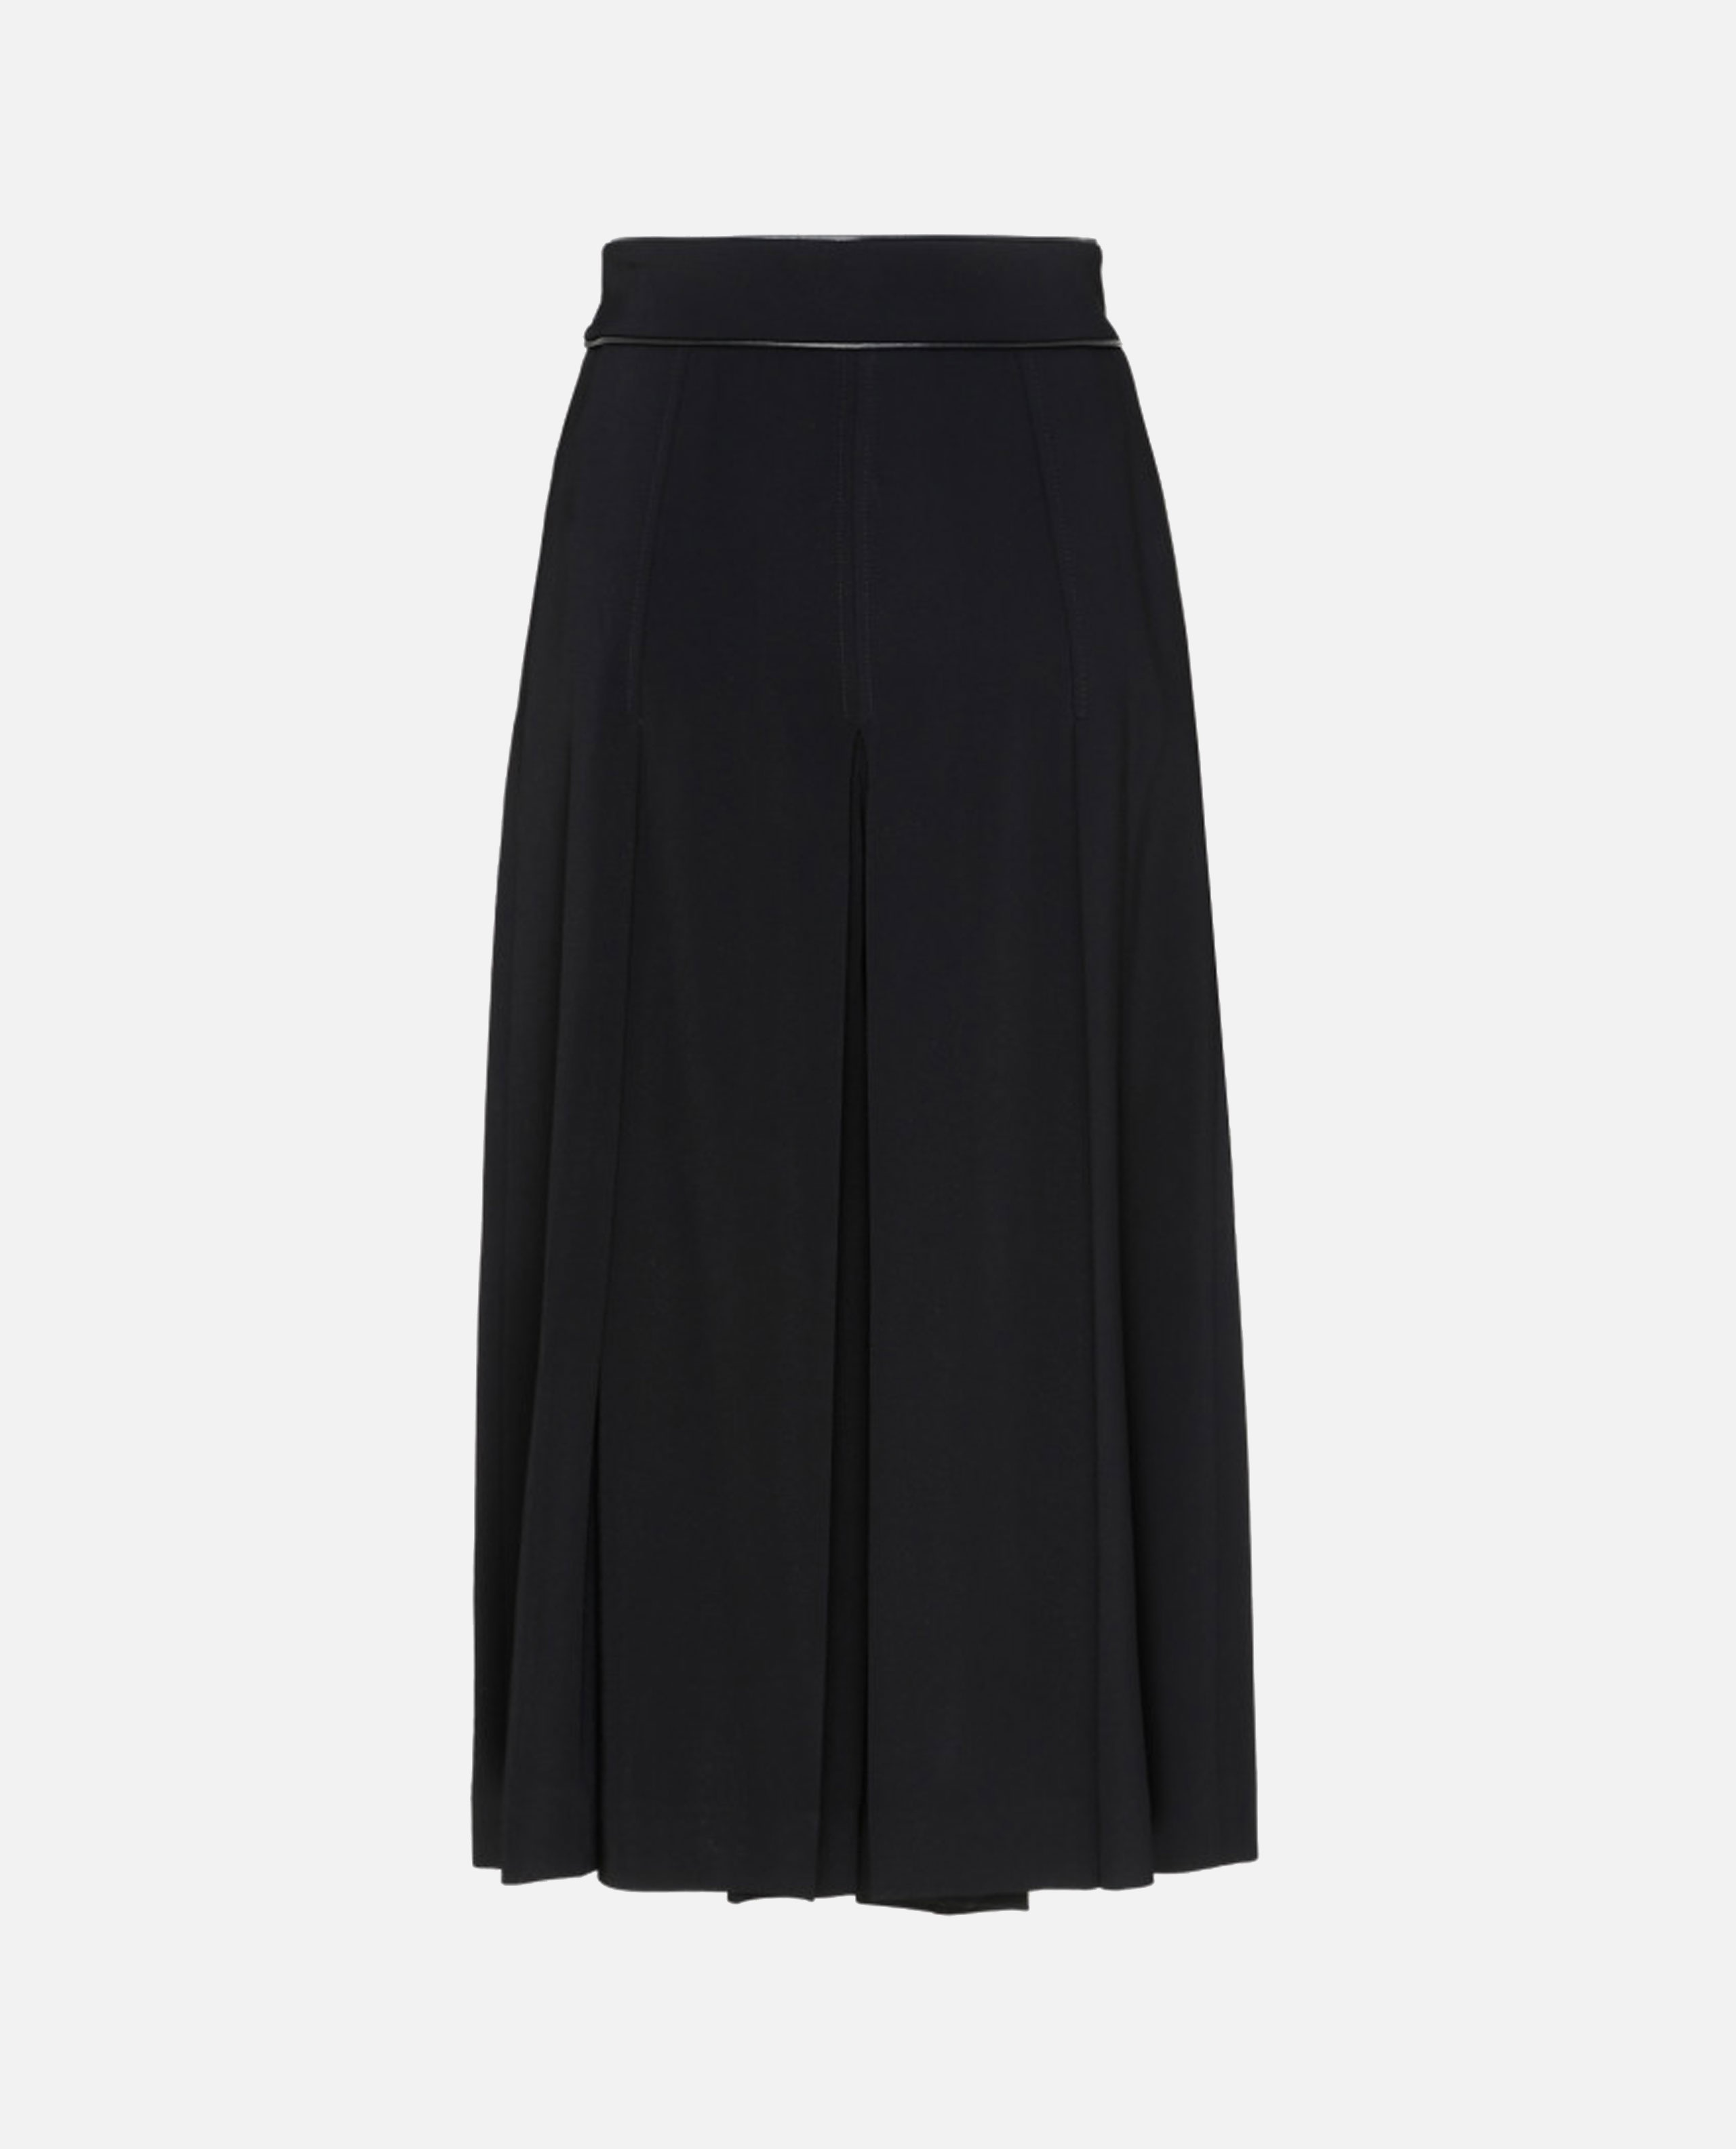 Culotte trousers with black horsebit Women Gucci 000219730032523 2